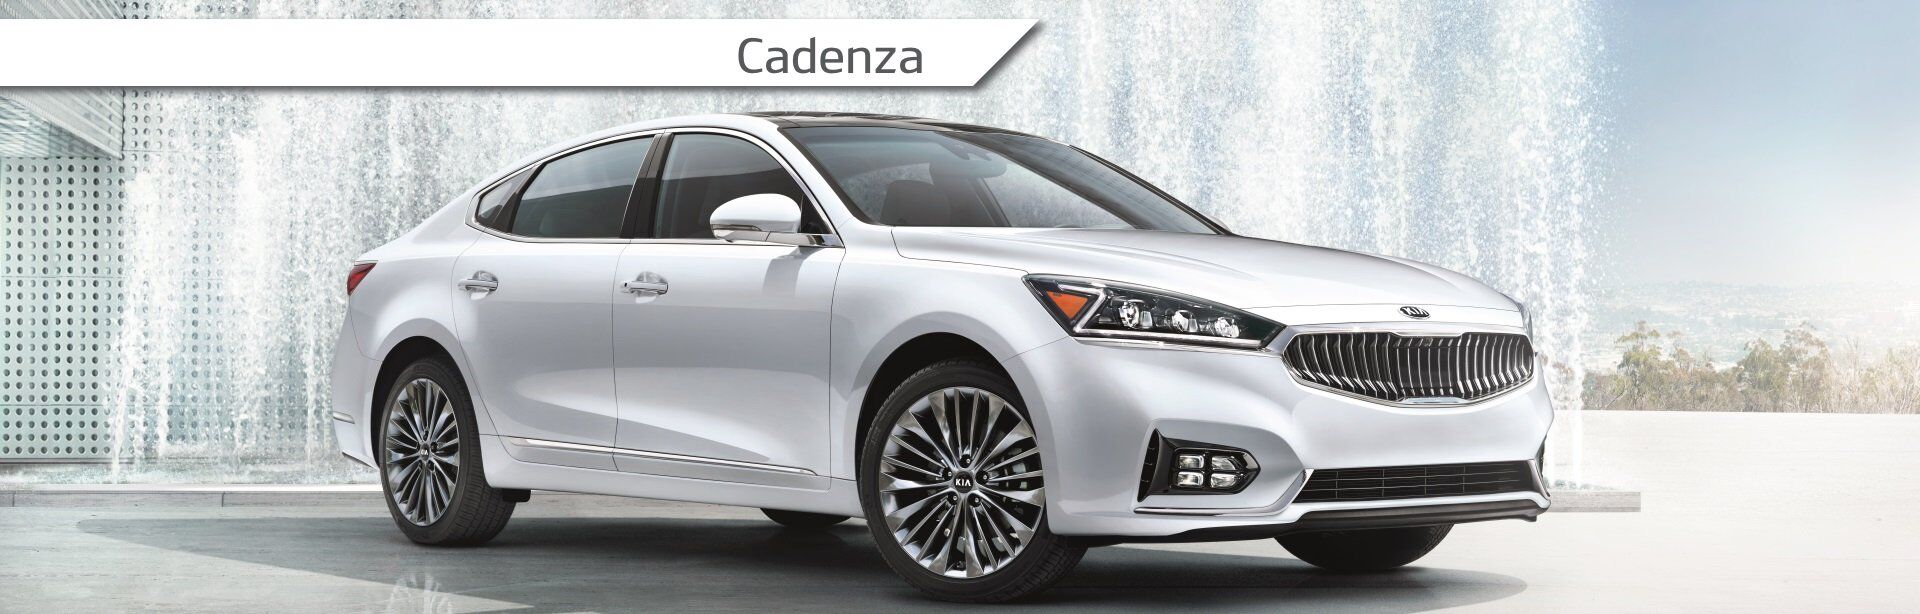 New Kia Cadenza at Roseville Kia